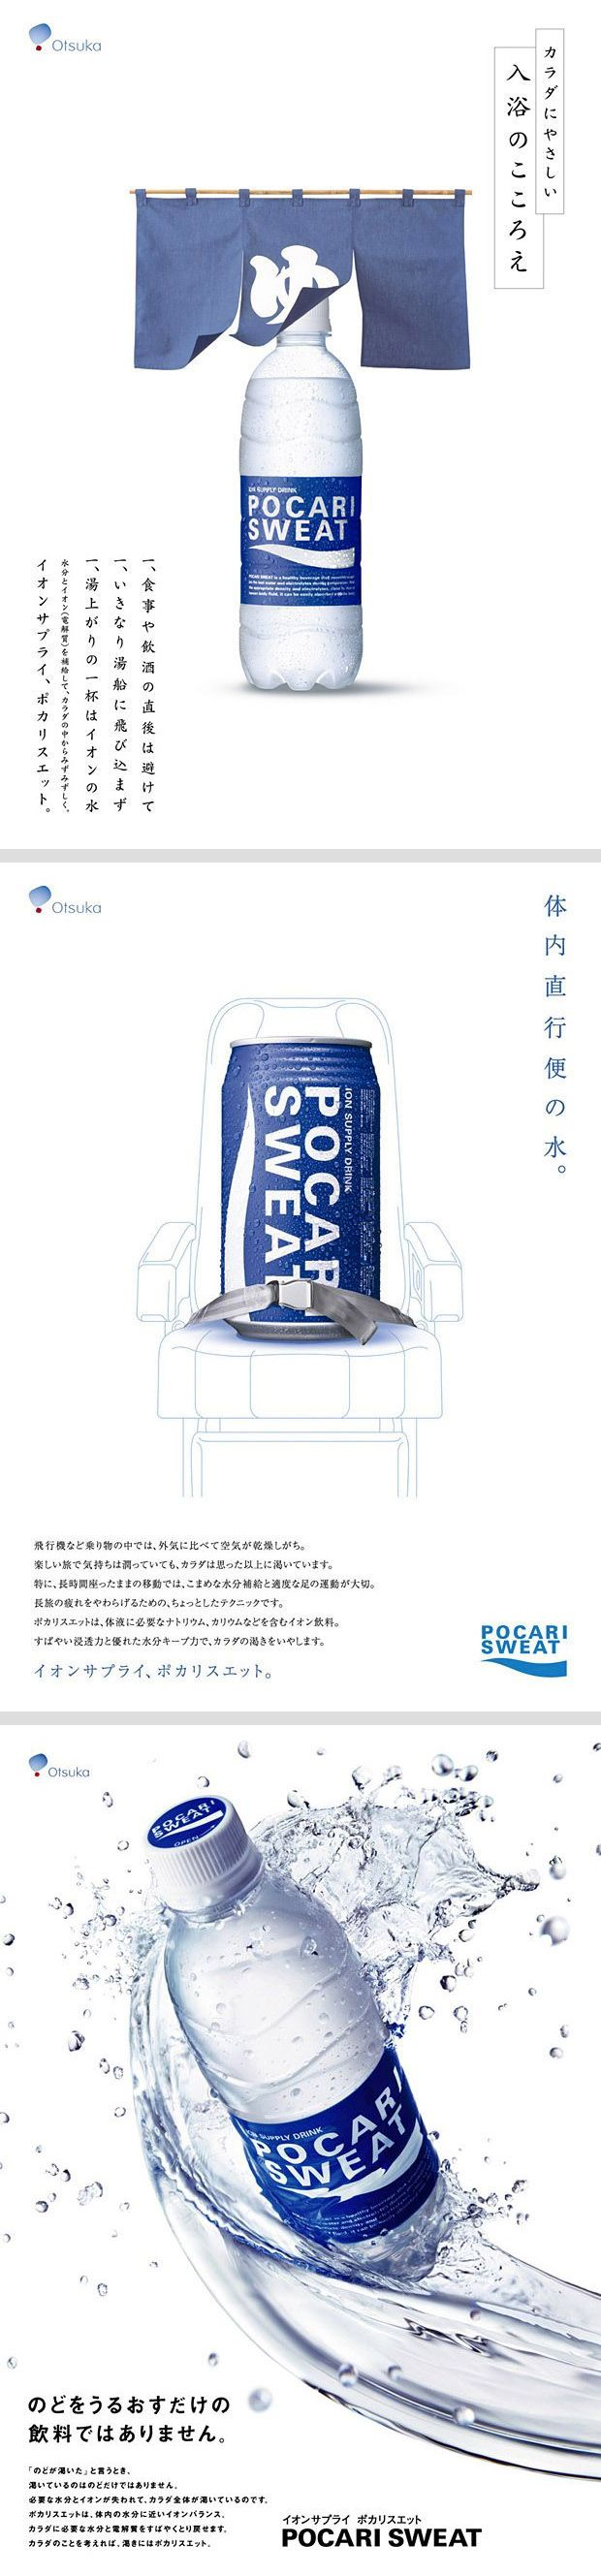 advertising set | Pocari Sweat by Otsuka Adview Site 大塚製薬